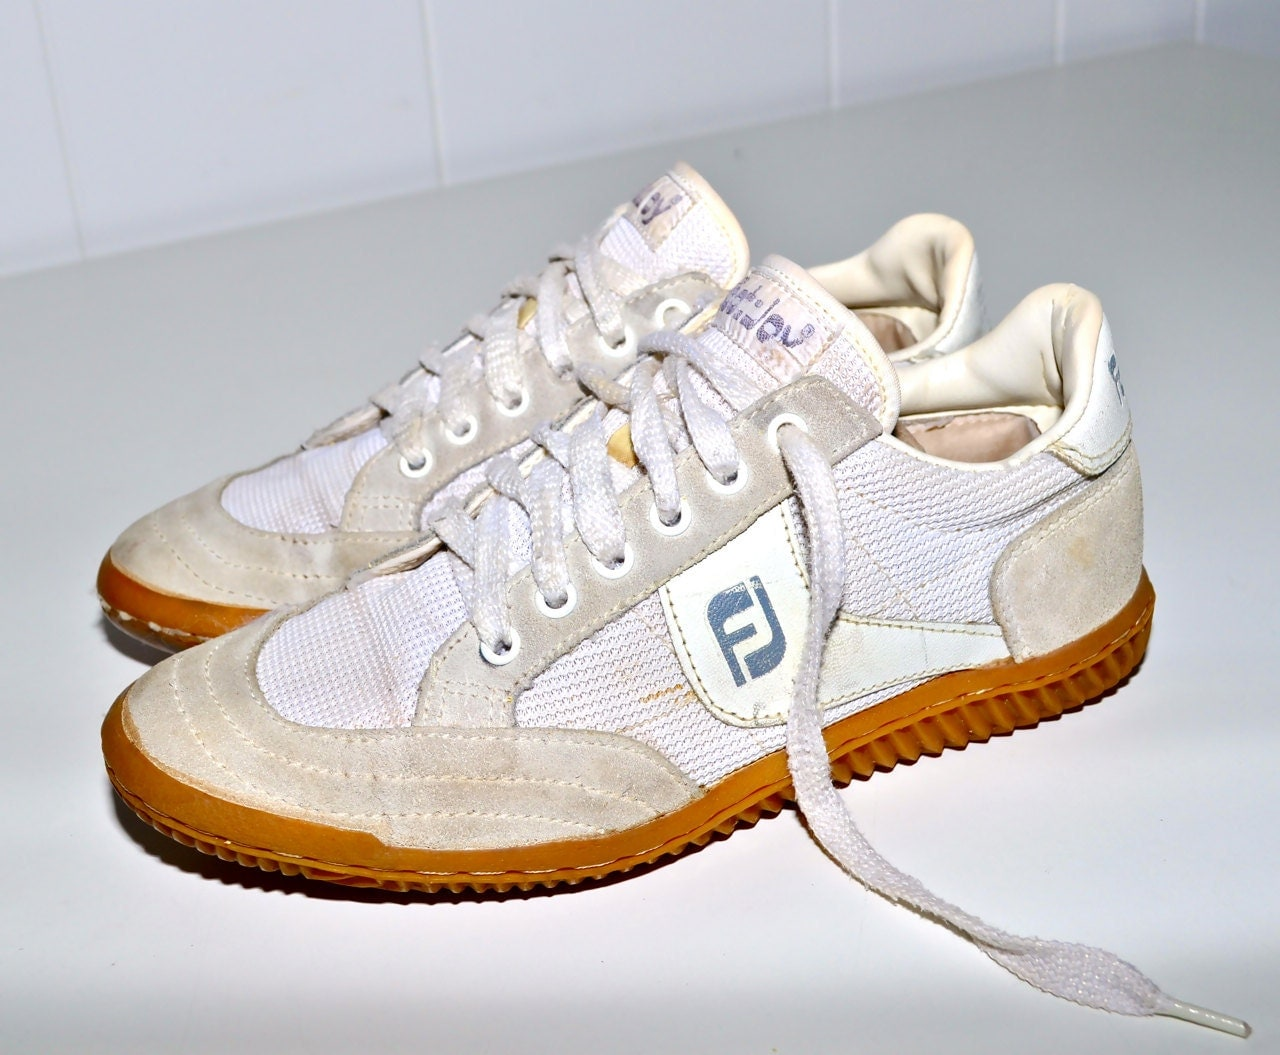 make an offer foot 1980s vintage 80s athletic sneakers